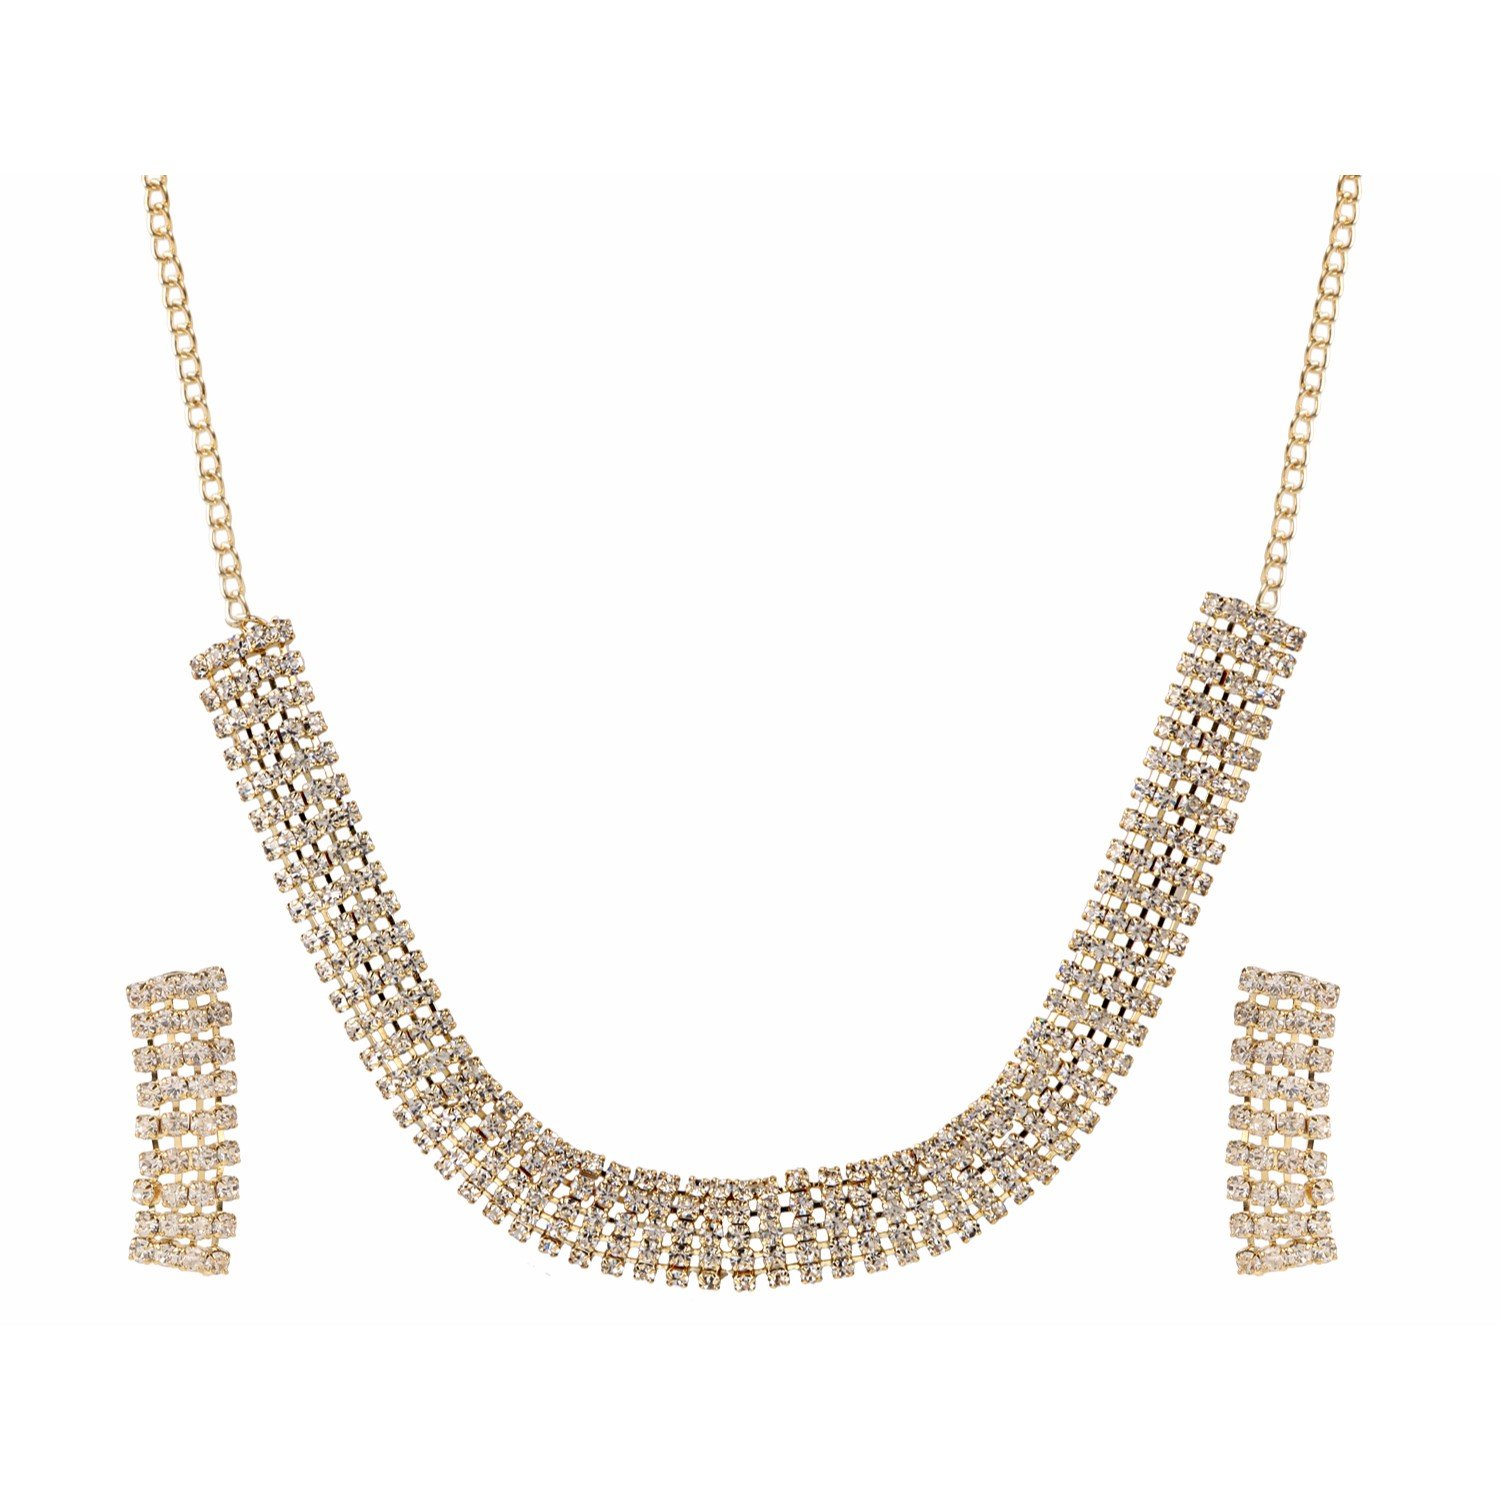 Efulgenz Round Chunky Collar Strand White Rhinestone Gold Plated Choker Statement Necklace Fashion Costume Accessories for Women and Girls (Style 7)